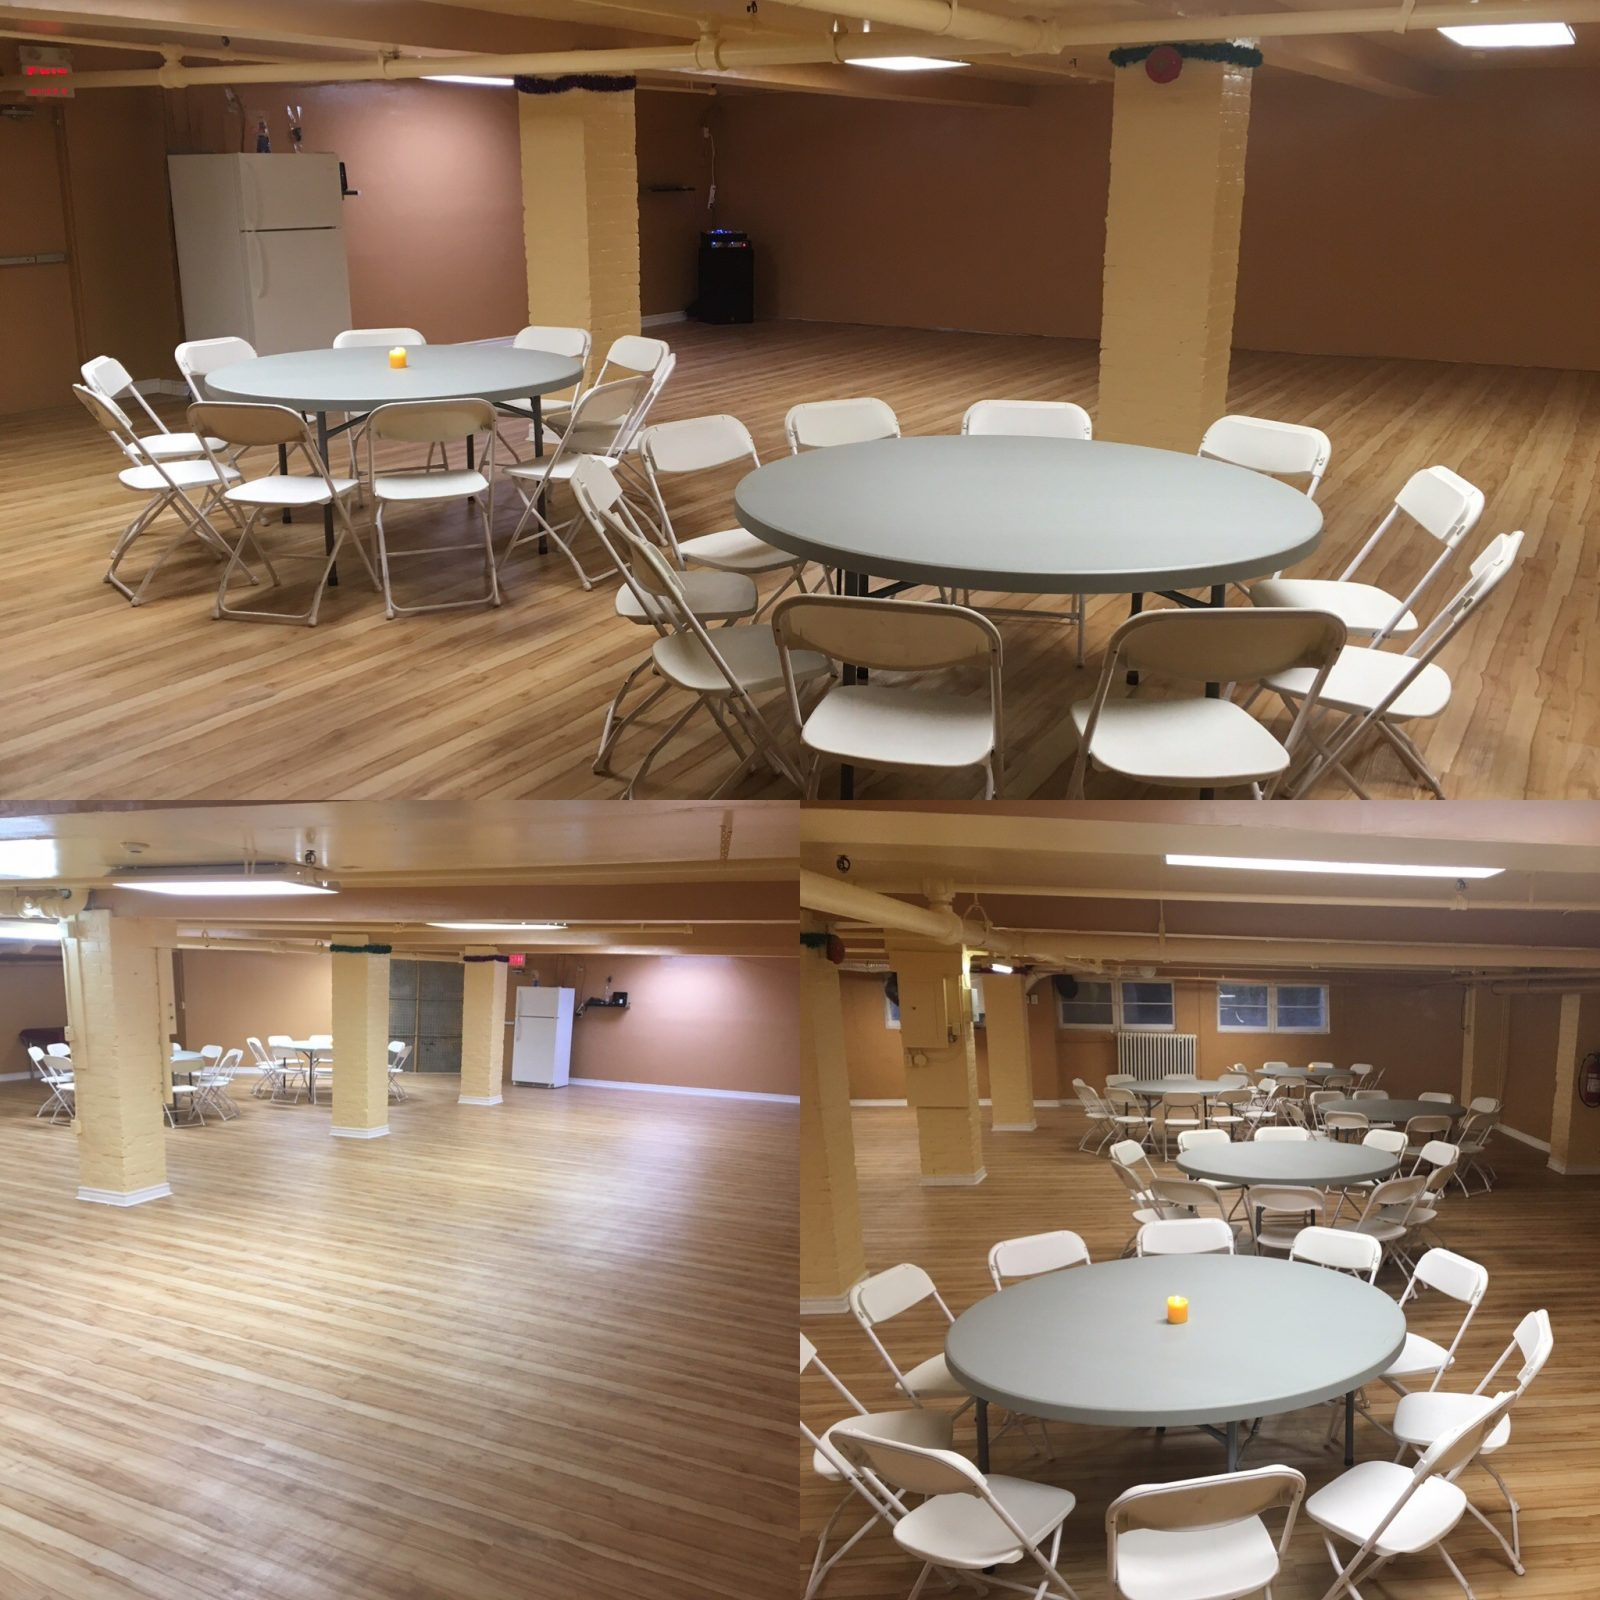 Access Ballroom - Dance Lessons & Classes Space Rental